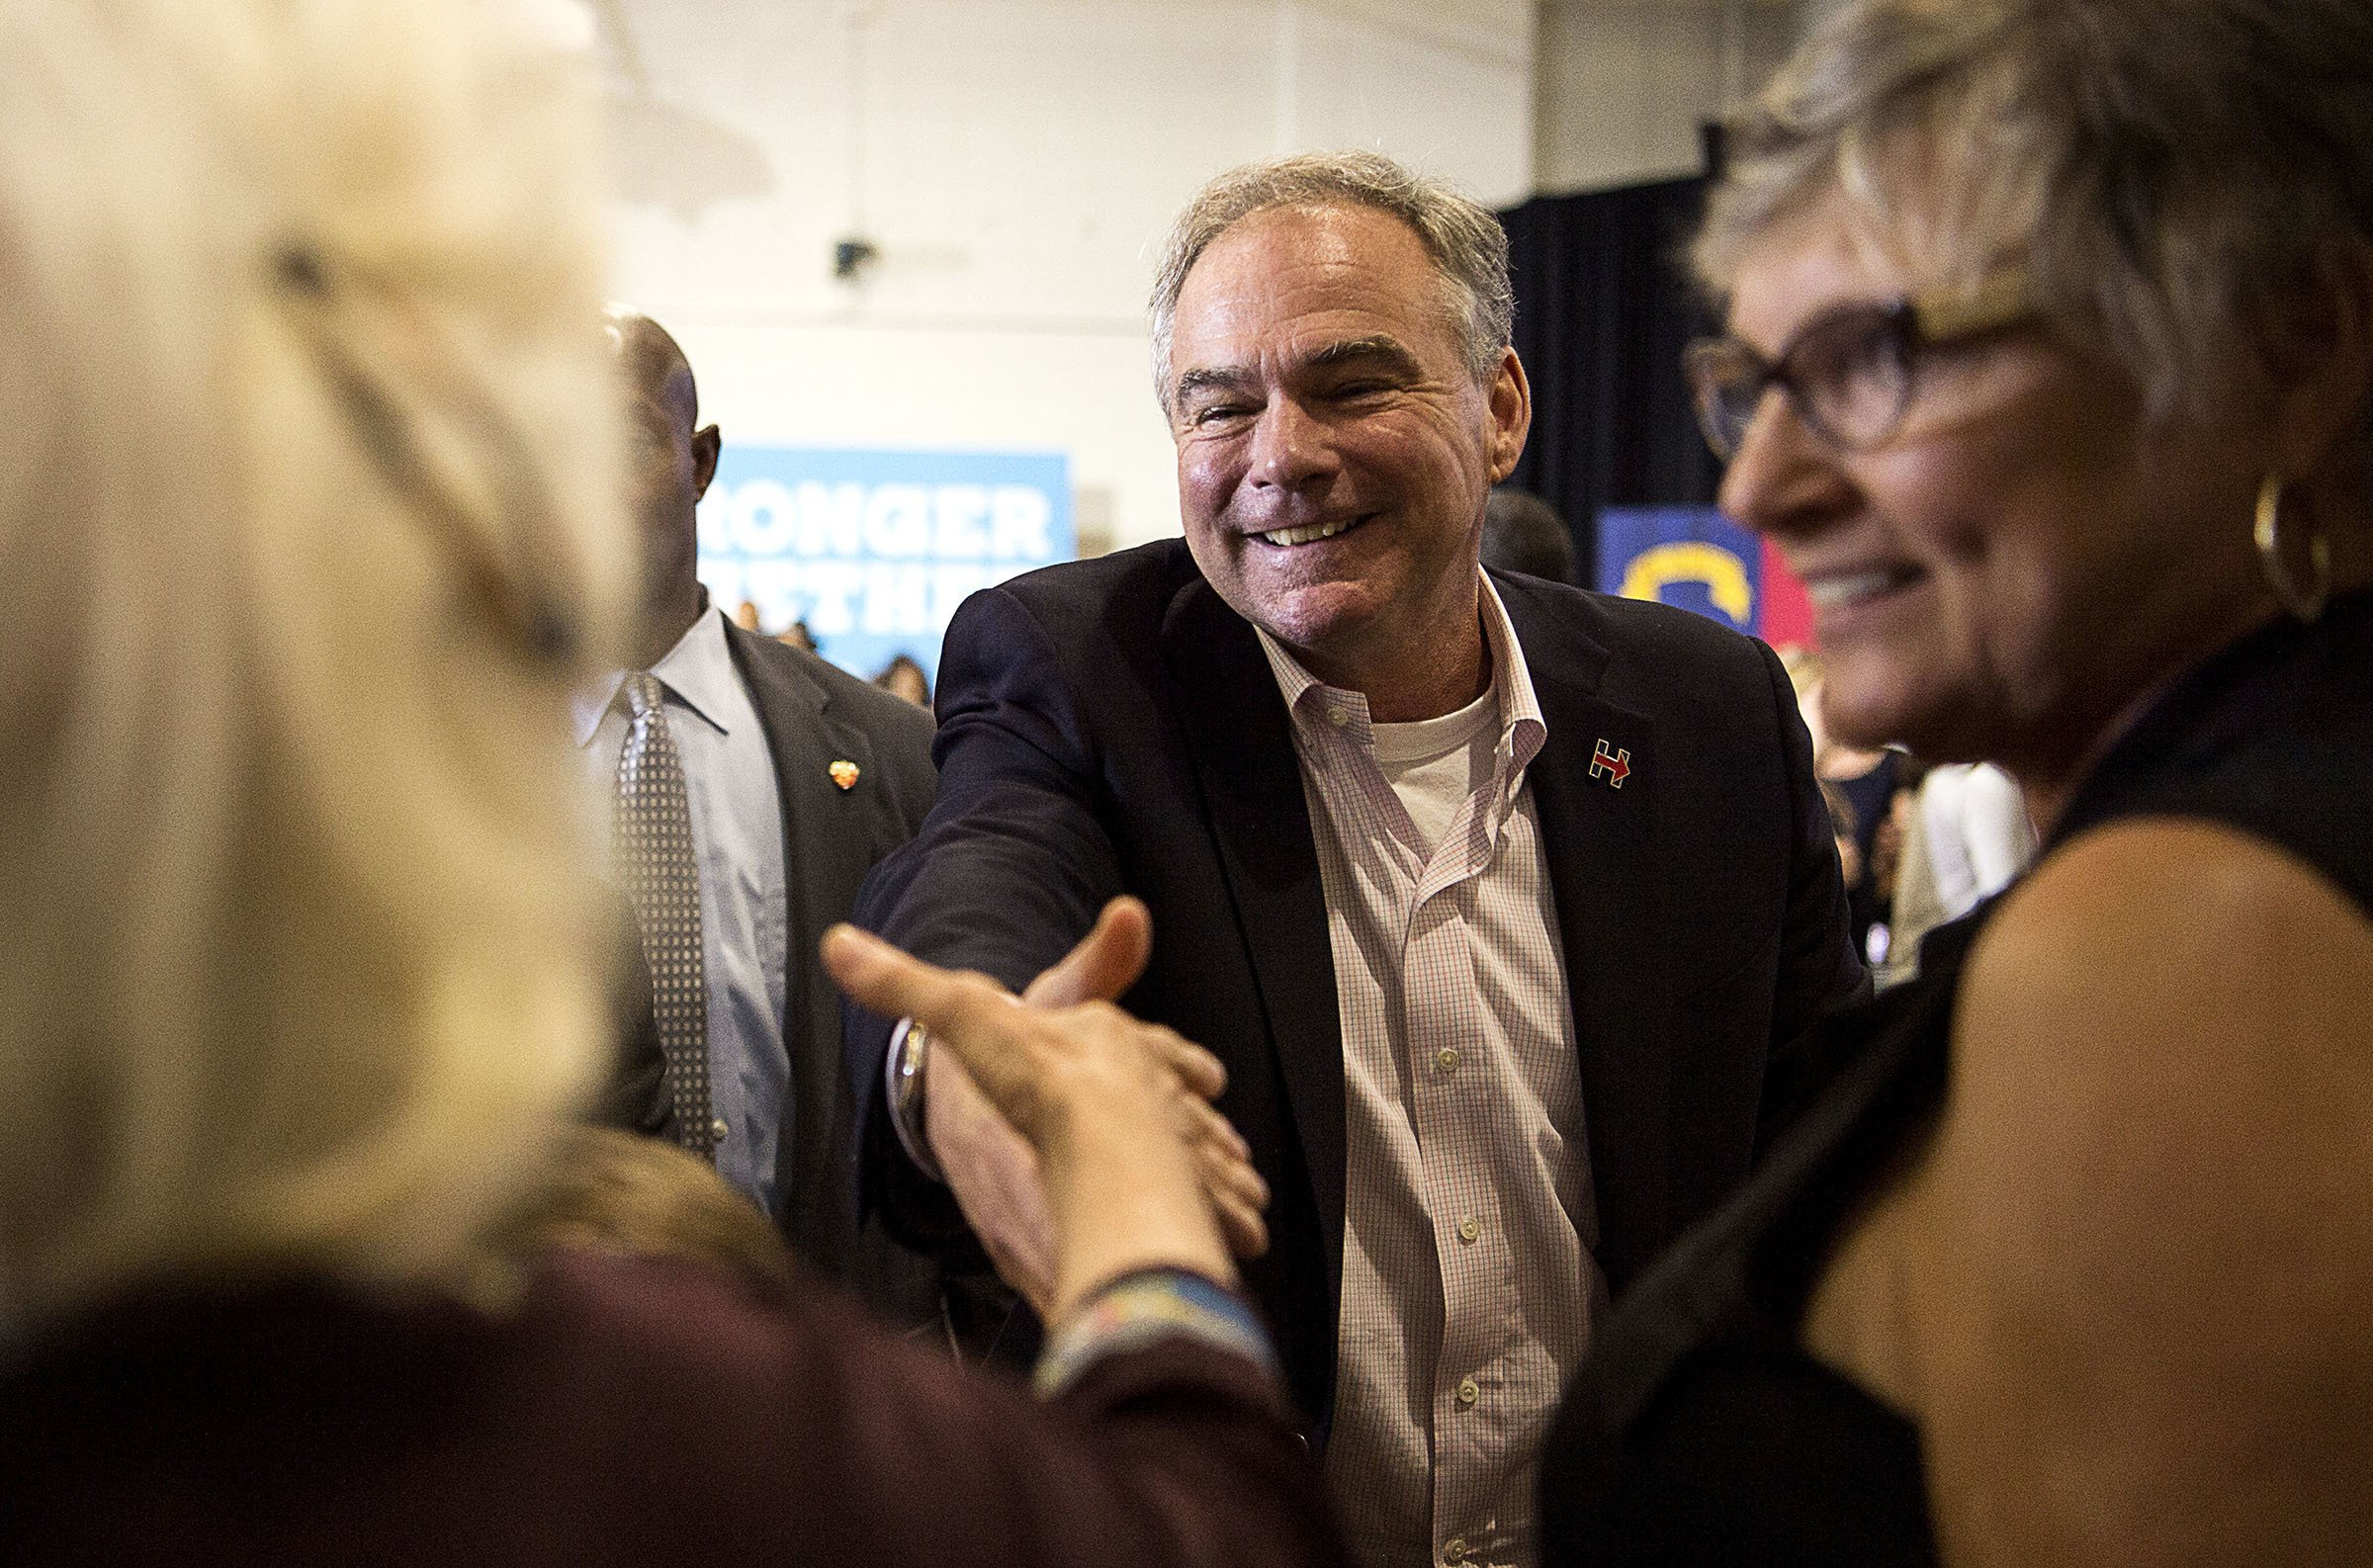 The Latest: Tim Kaine wails on harmonica at NC brewery